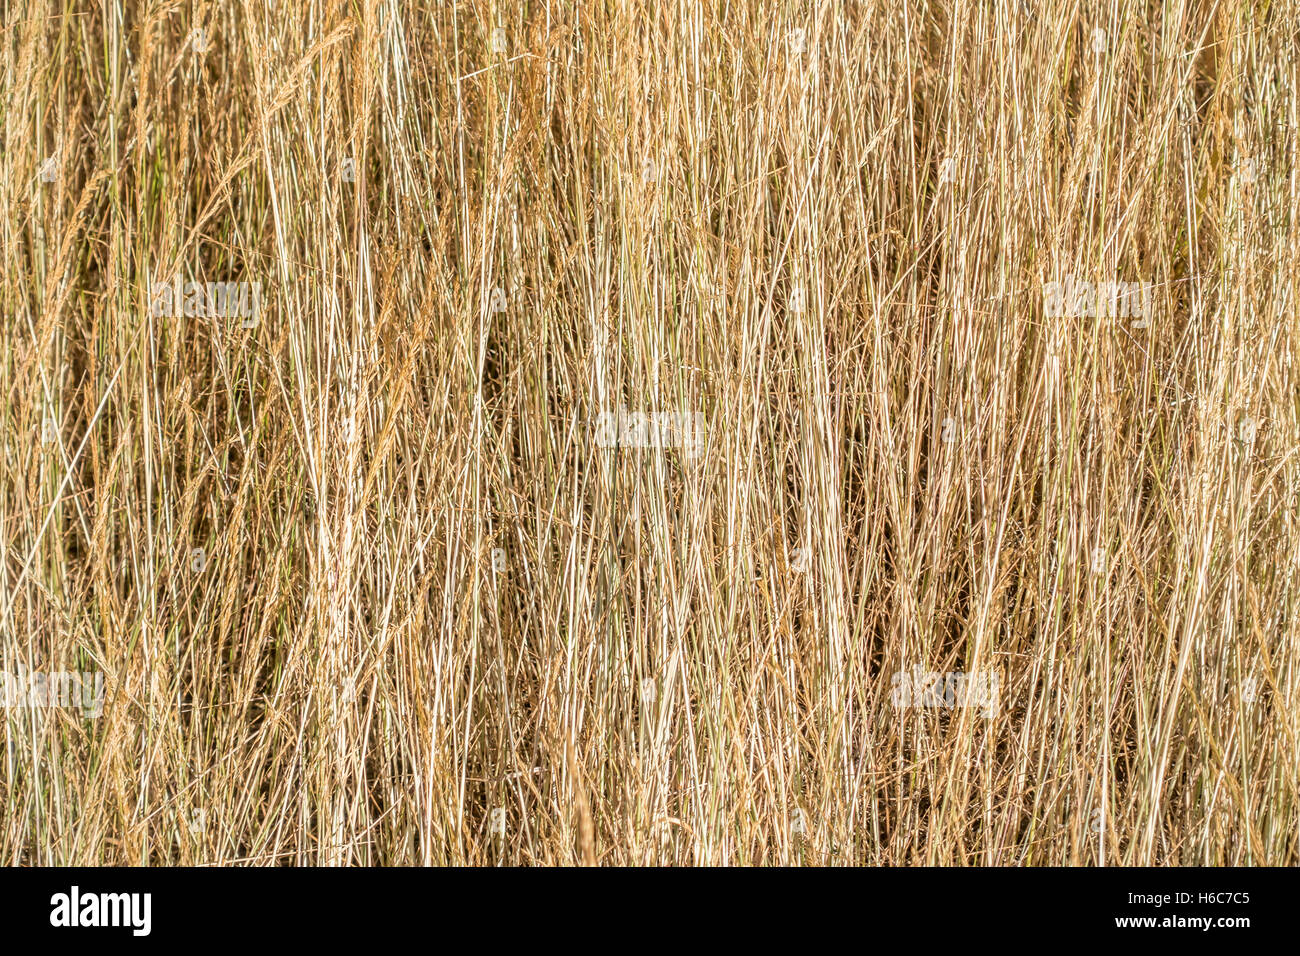 Tall dry grass closeup Texture or background Stock Photo 124429765